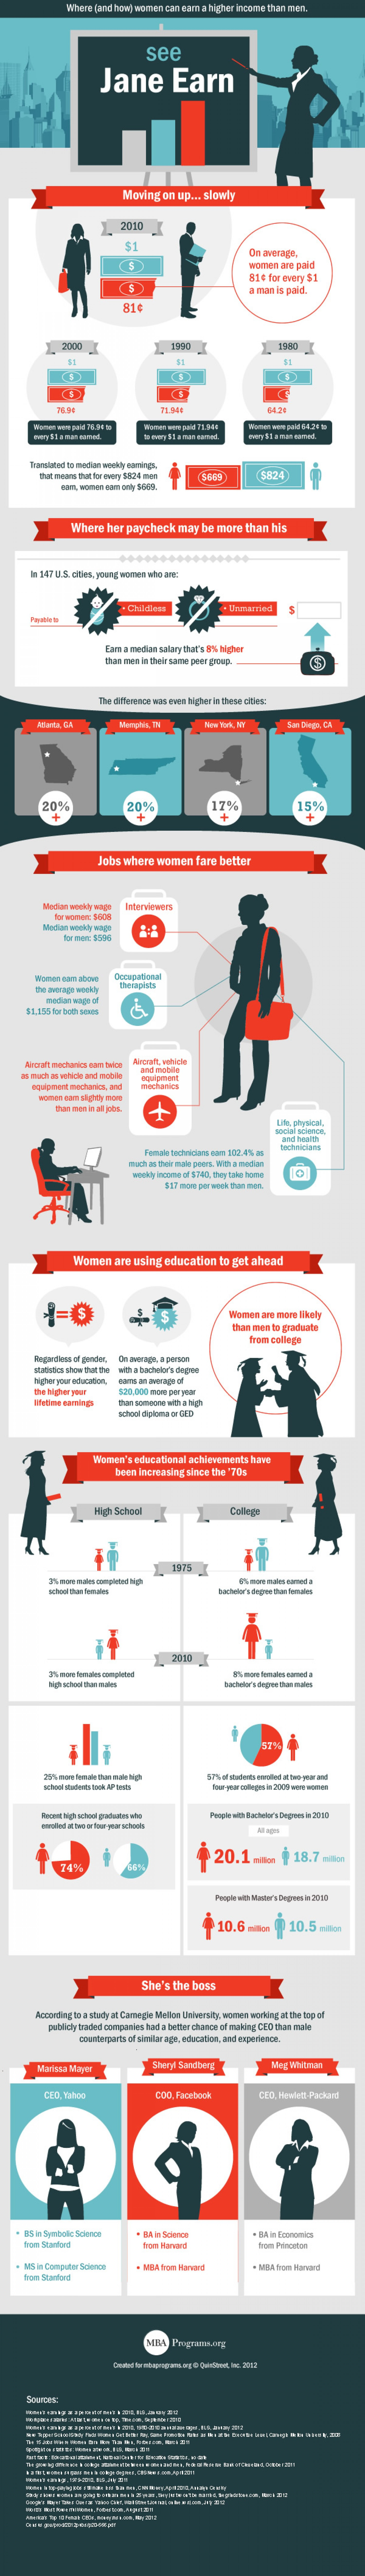 13. How women can earn higher income